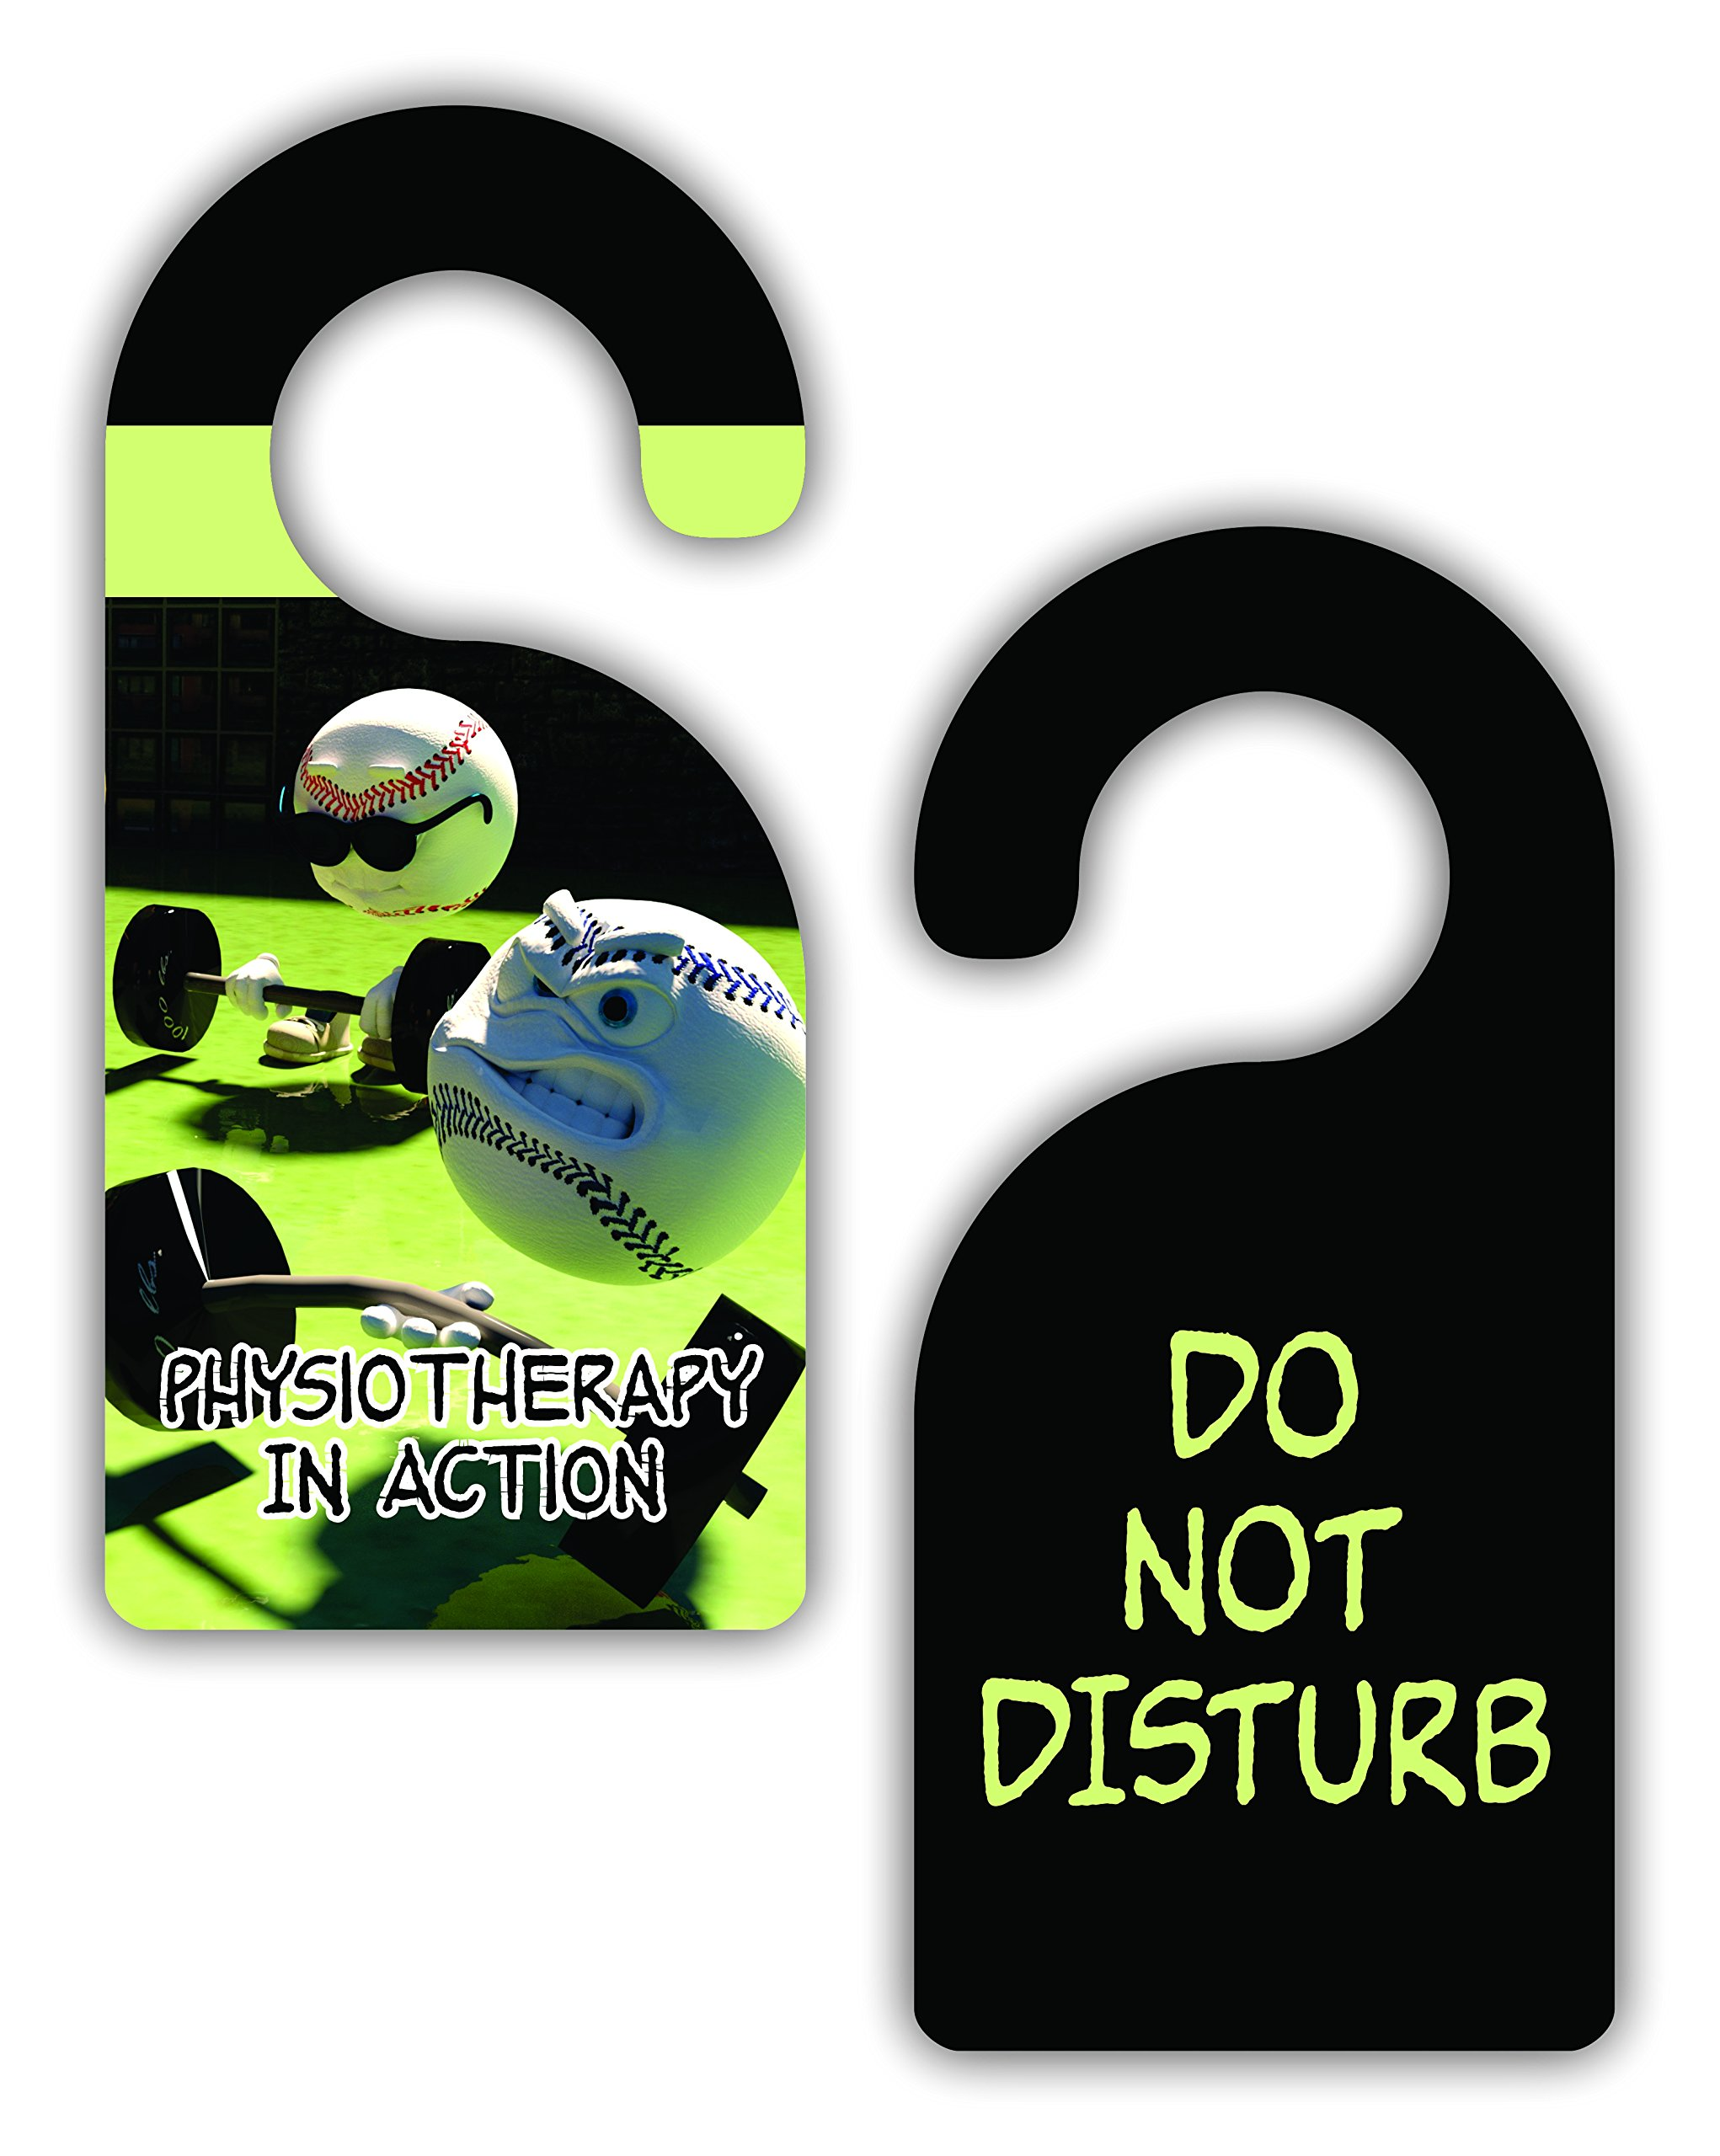 Physiotherapy in Action/Do Not Disturb - Therapist - Watercolor Print - Double-Sided Hard Plastic Glossy Door Hanger